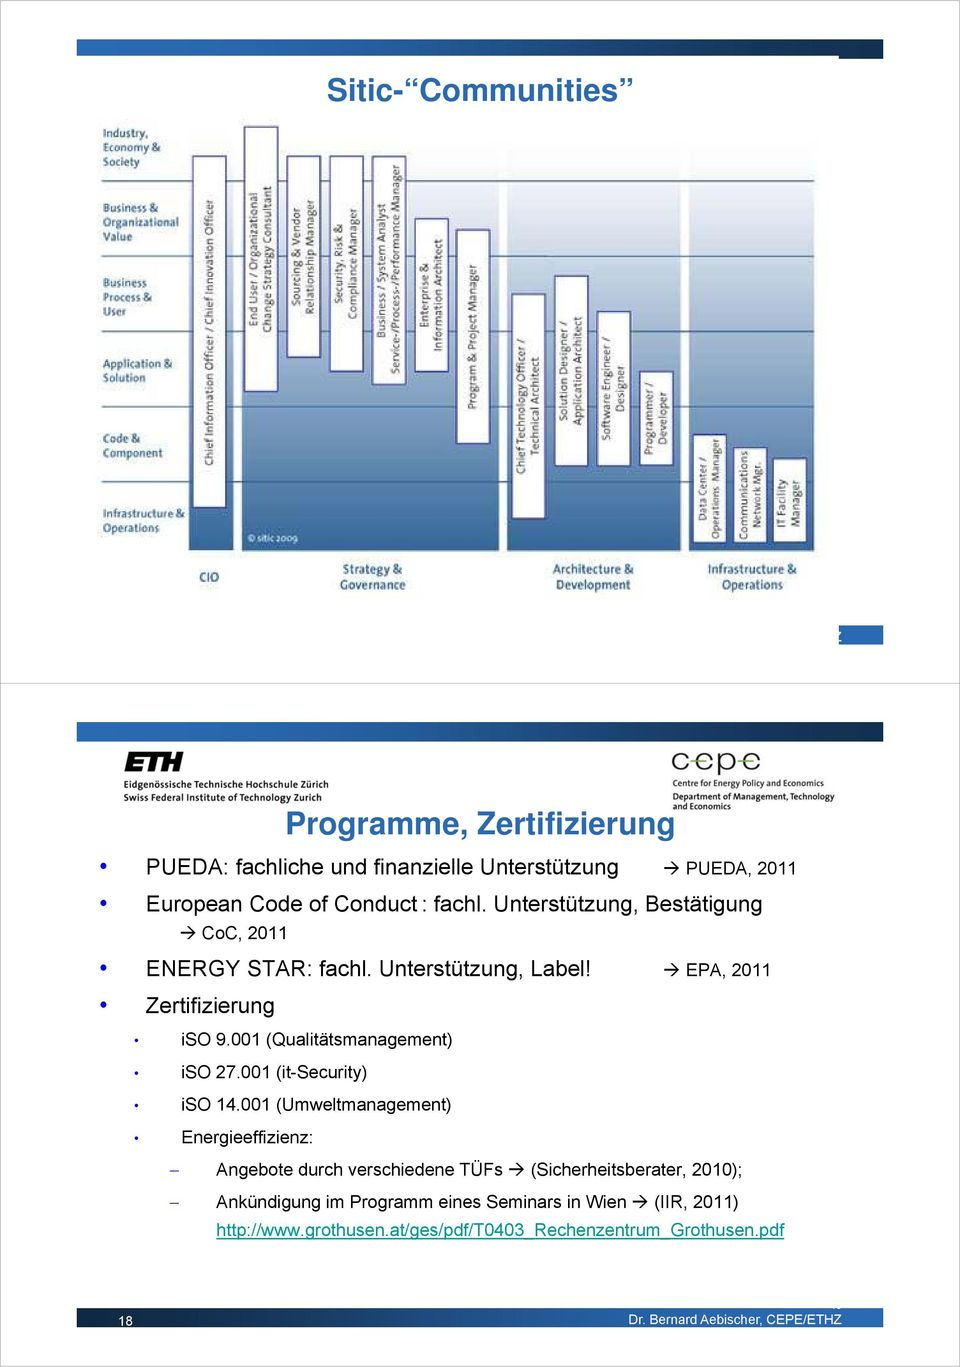 001 (Qualitätsmanagement) iso 27.001 (it-security) iso 14.